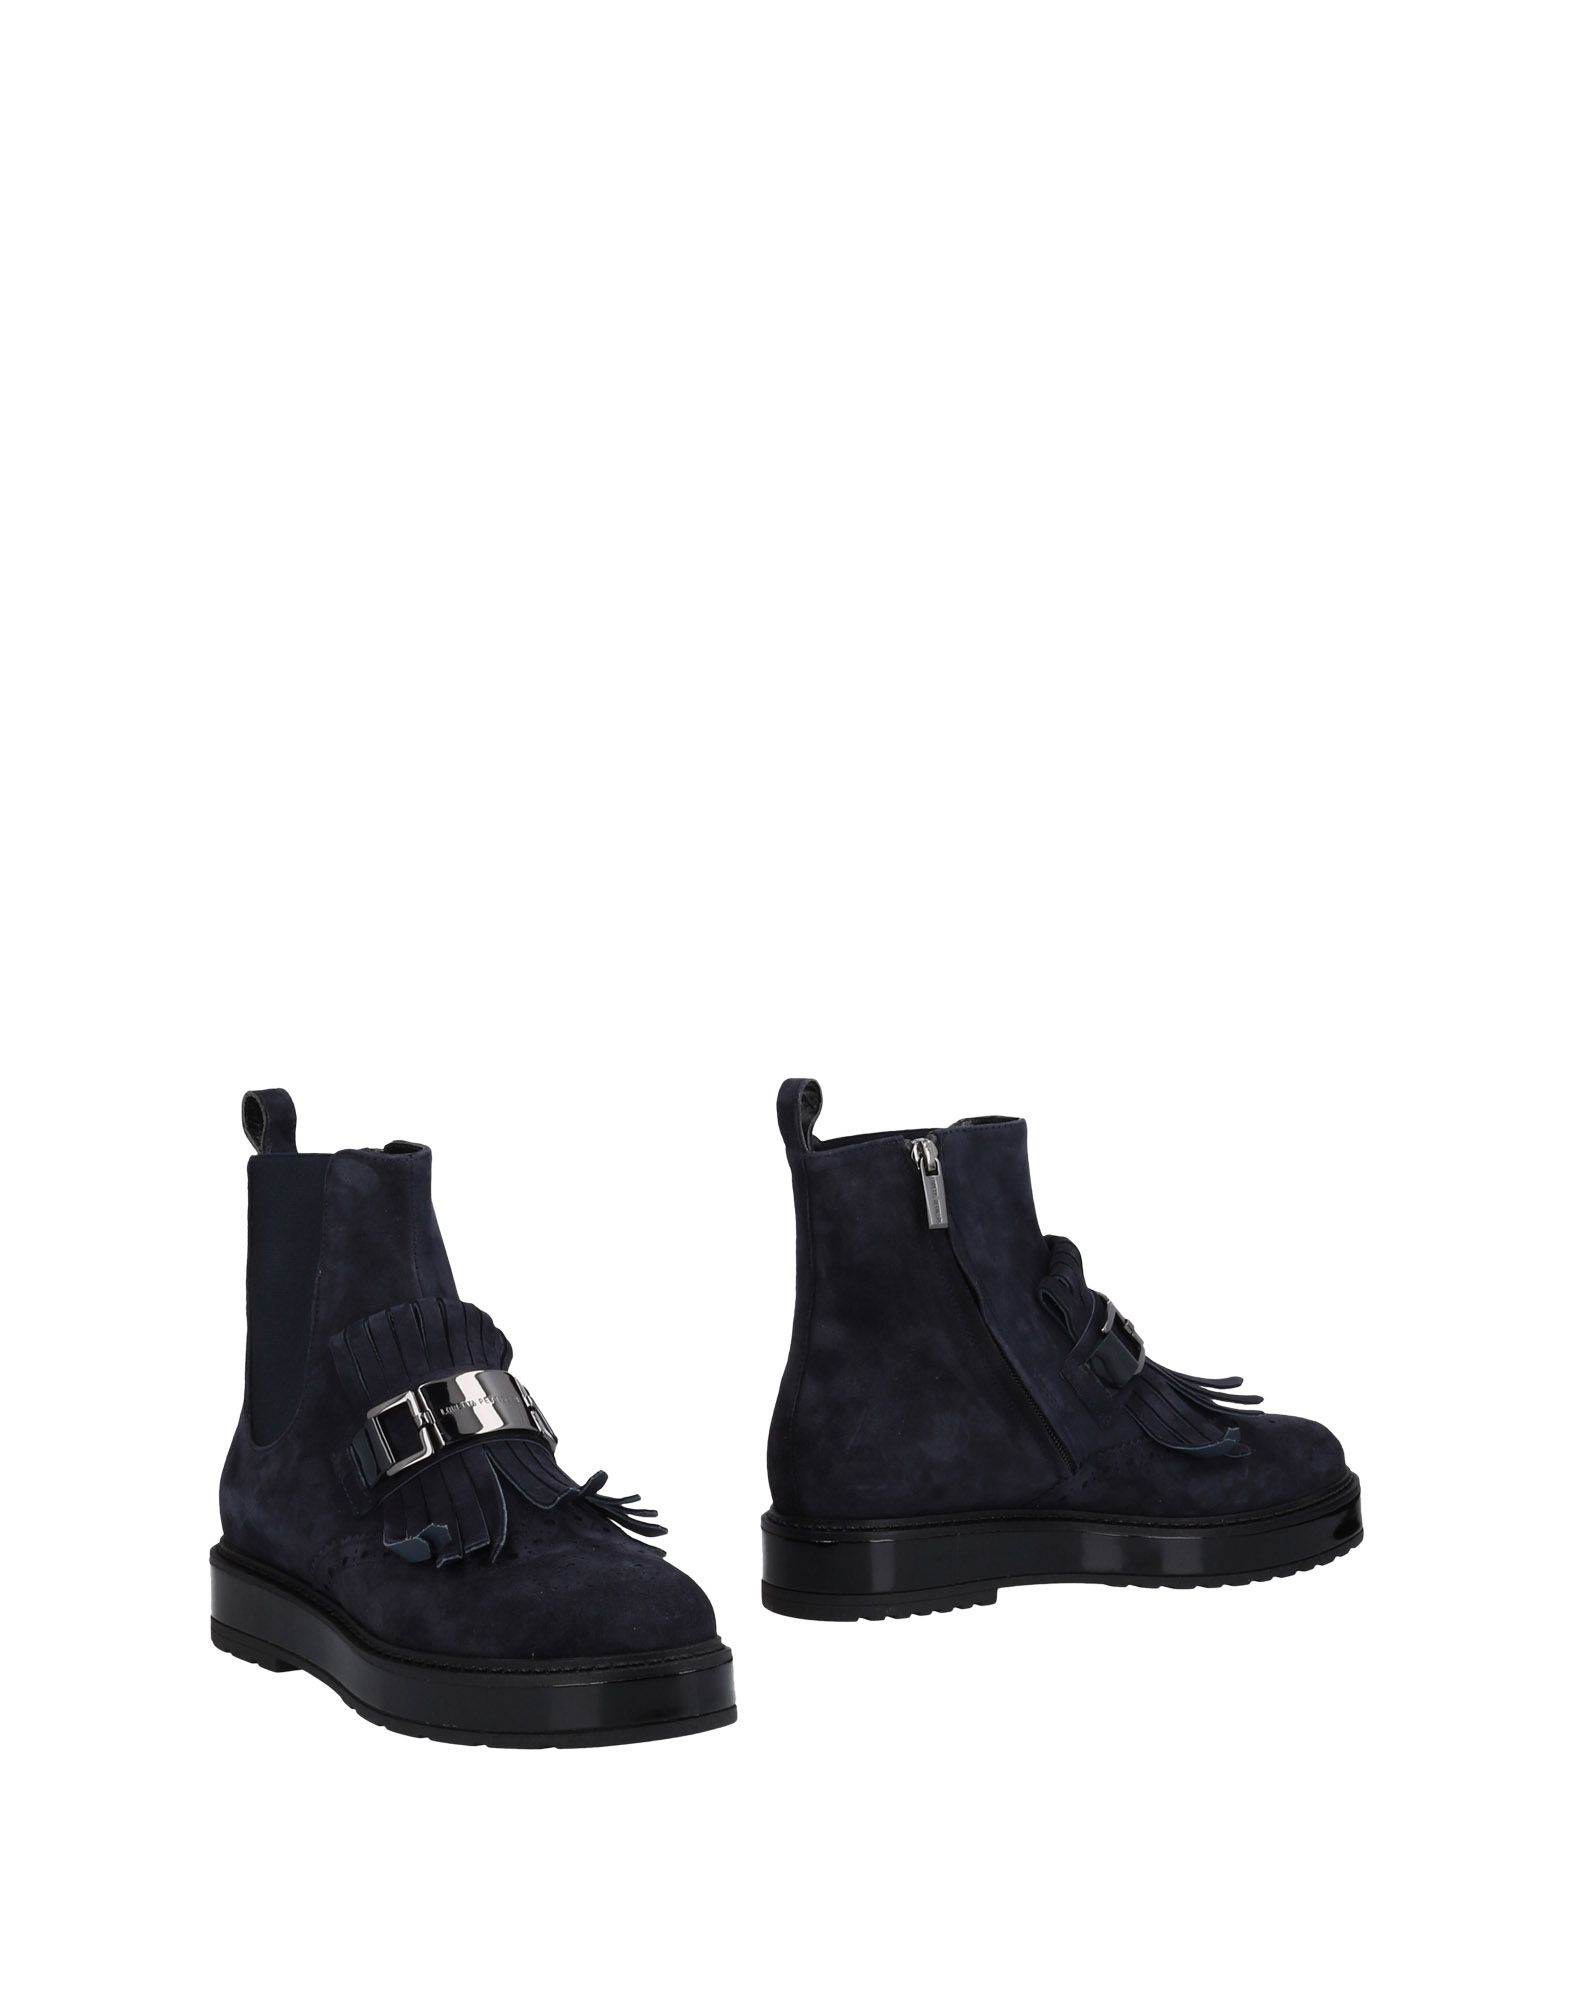 Loretta Women Pettinari Ankle Boot - Women Loretta Loretta Pettinari Ankle Boots online on  United Kingdom - 11494253EA 92a9c5